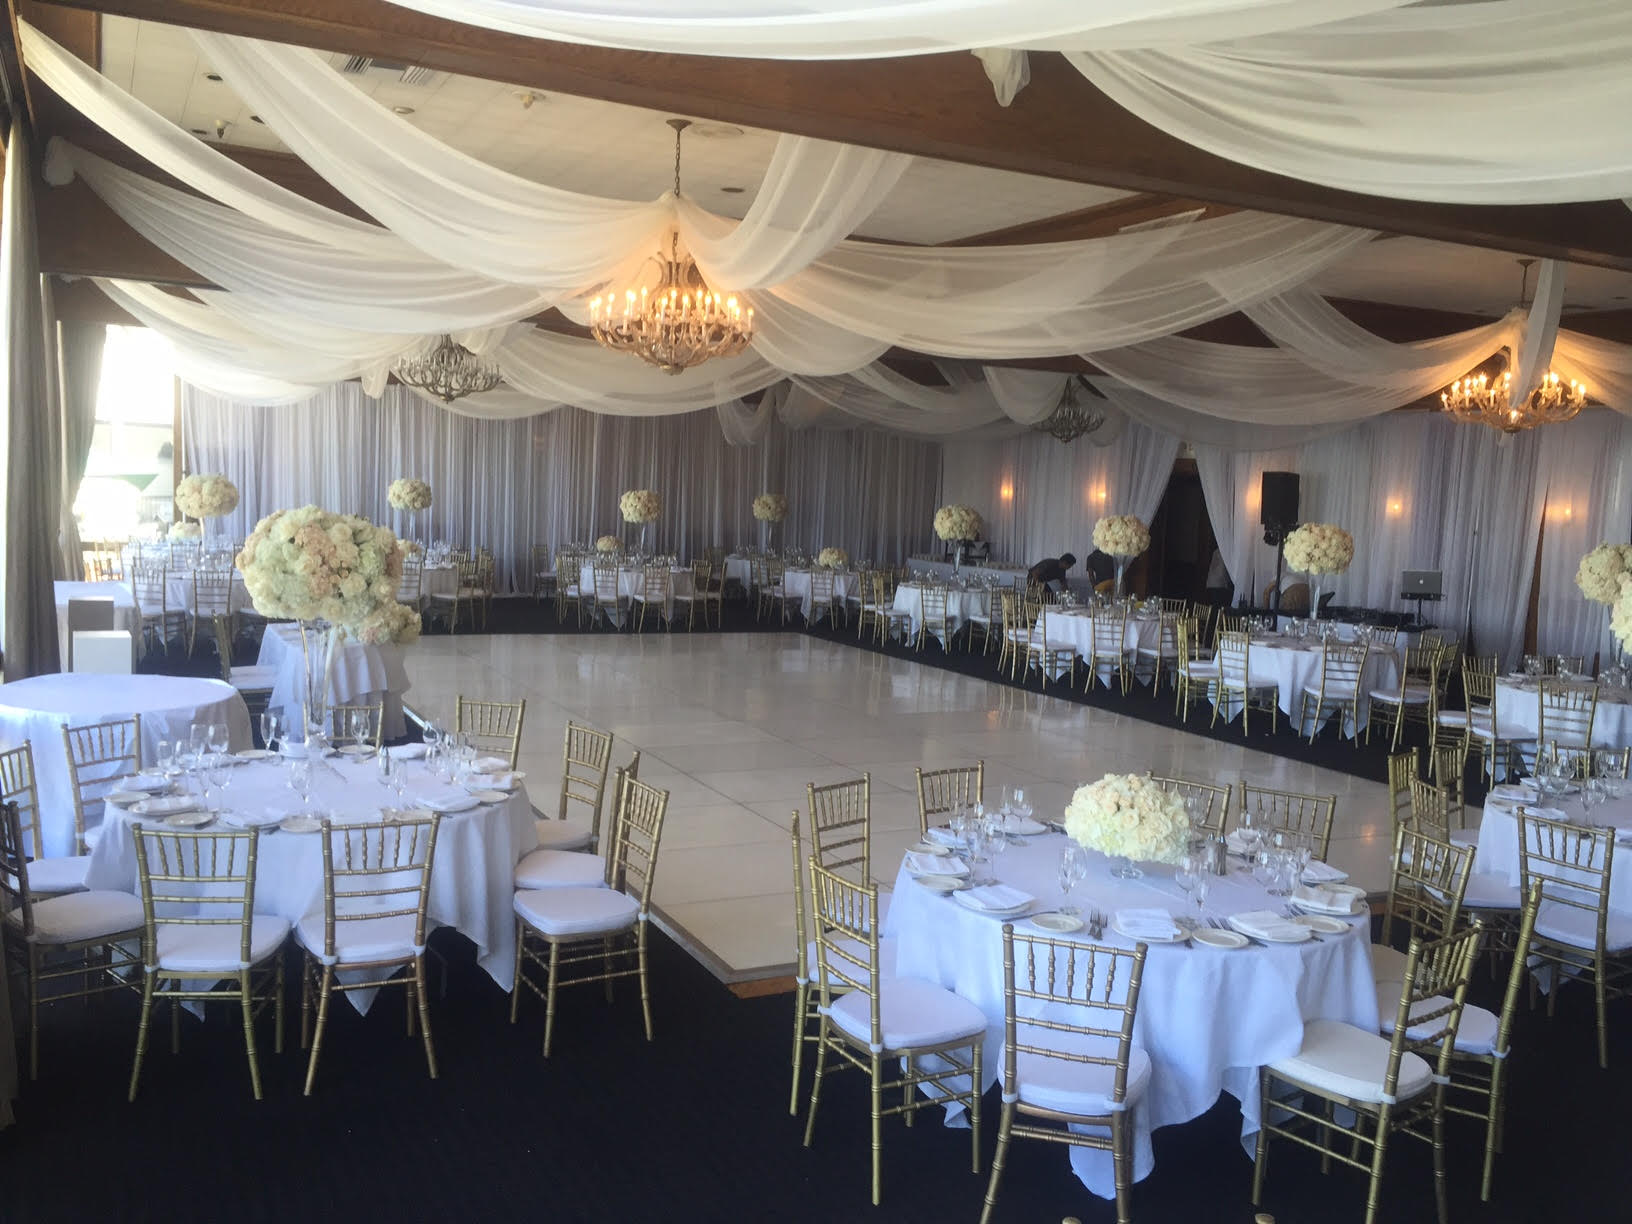 chair rentals long beach ca gym exercise system wedding at the reef restaurant in 818 636 gold chiavari rental